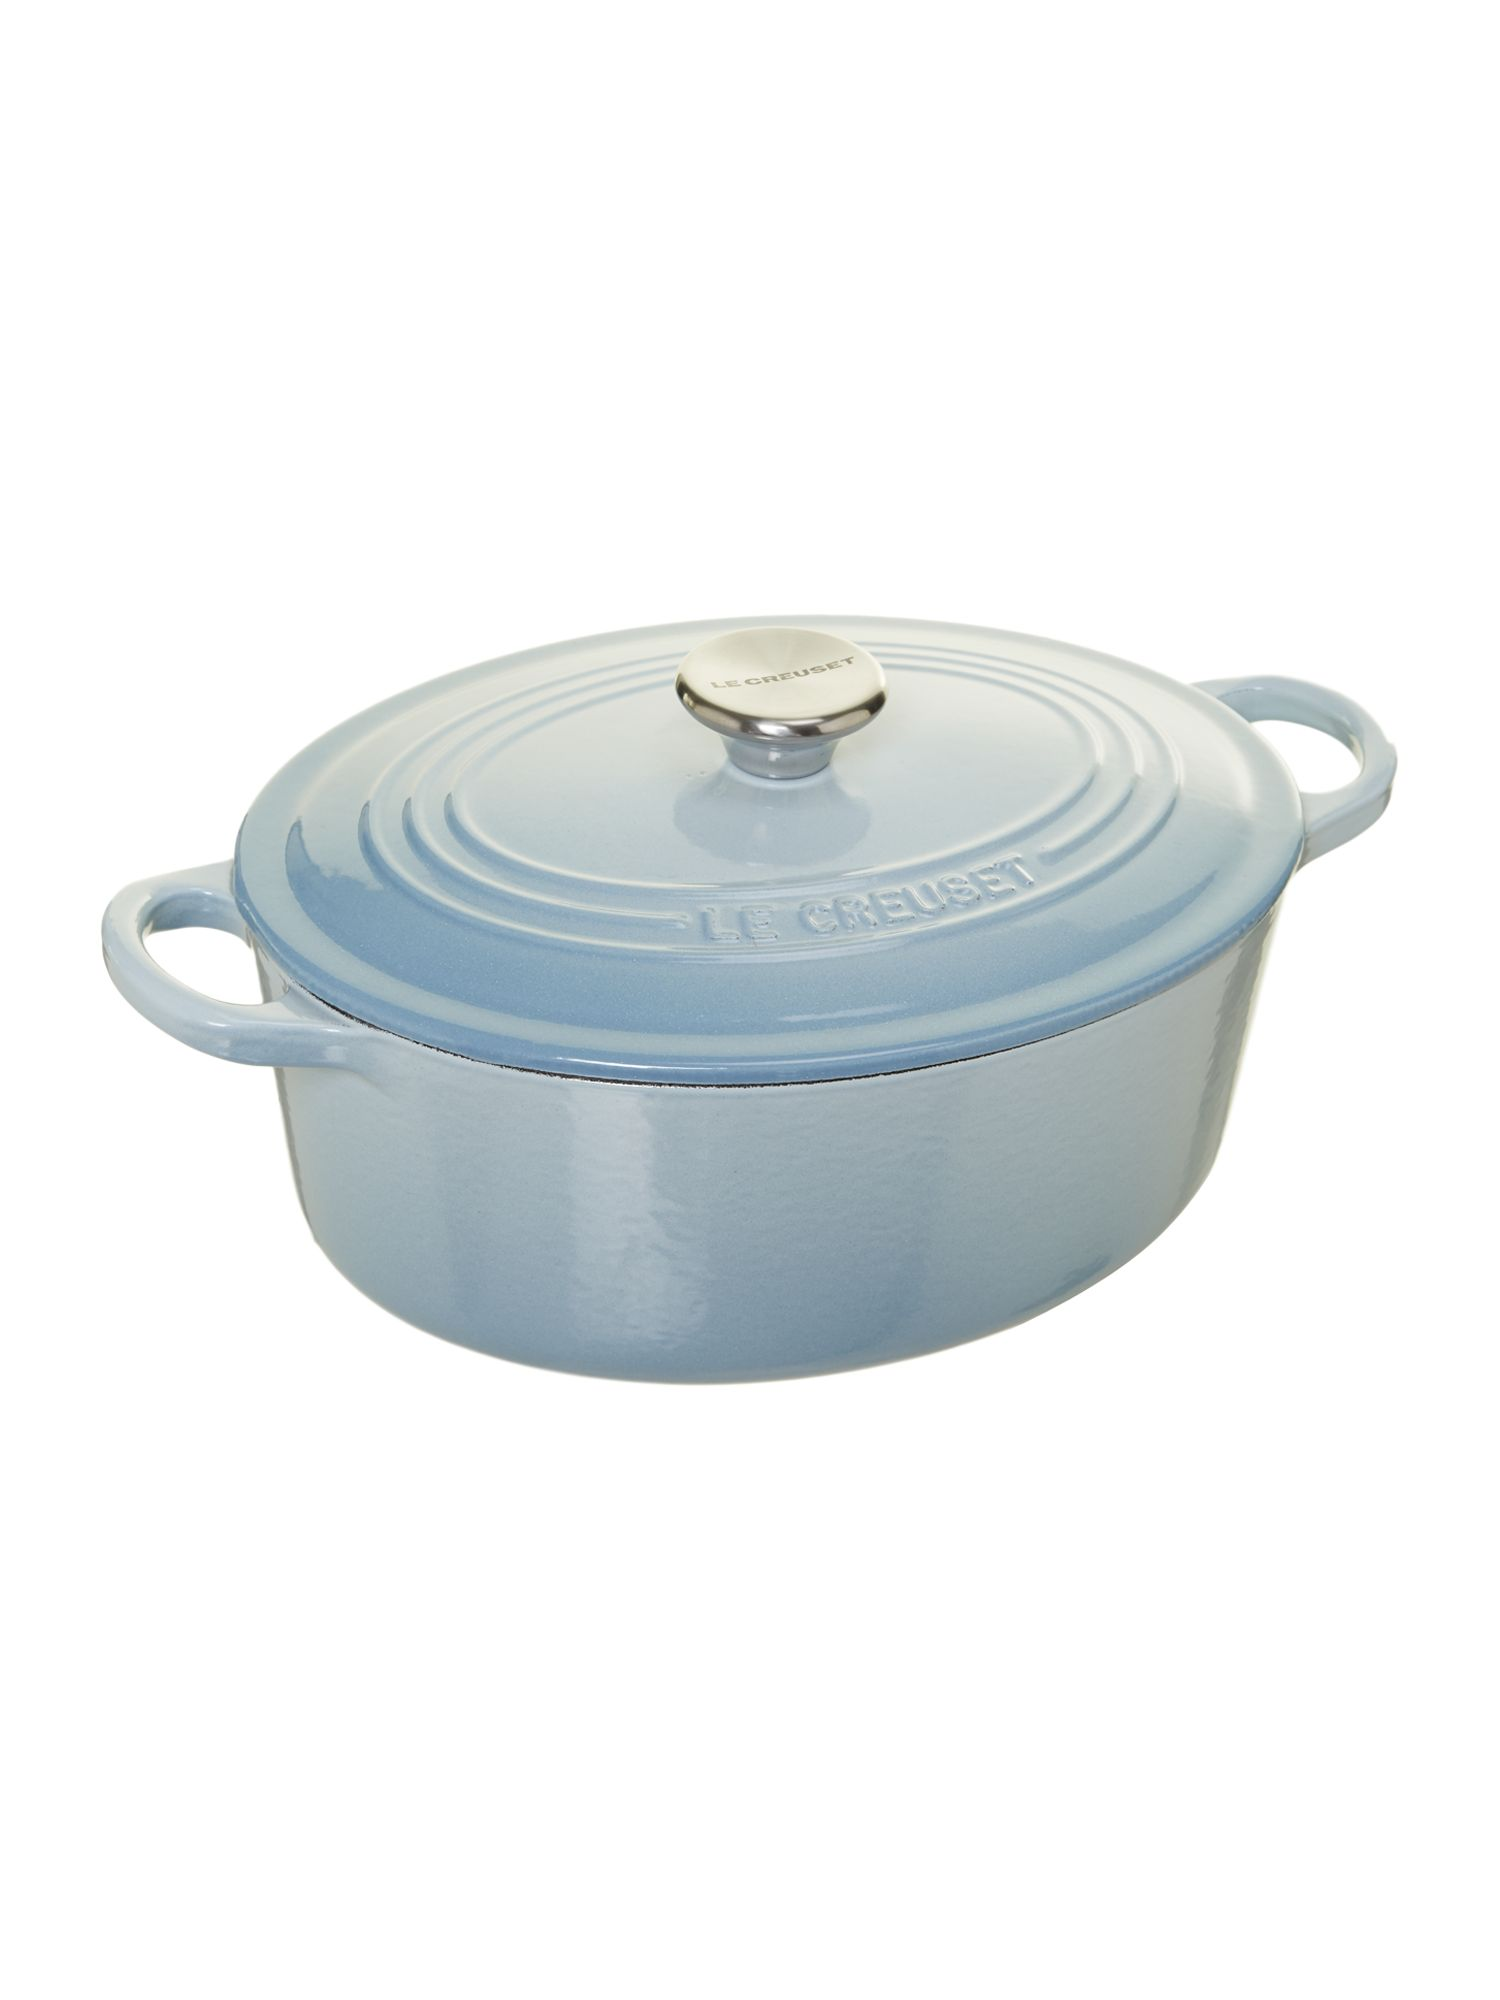 Oval casserole, Coastal Blue, 25cm